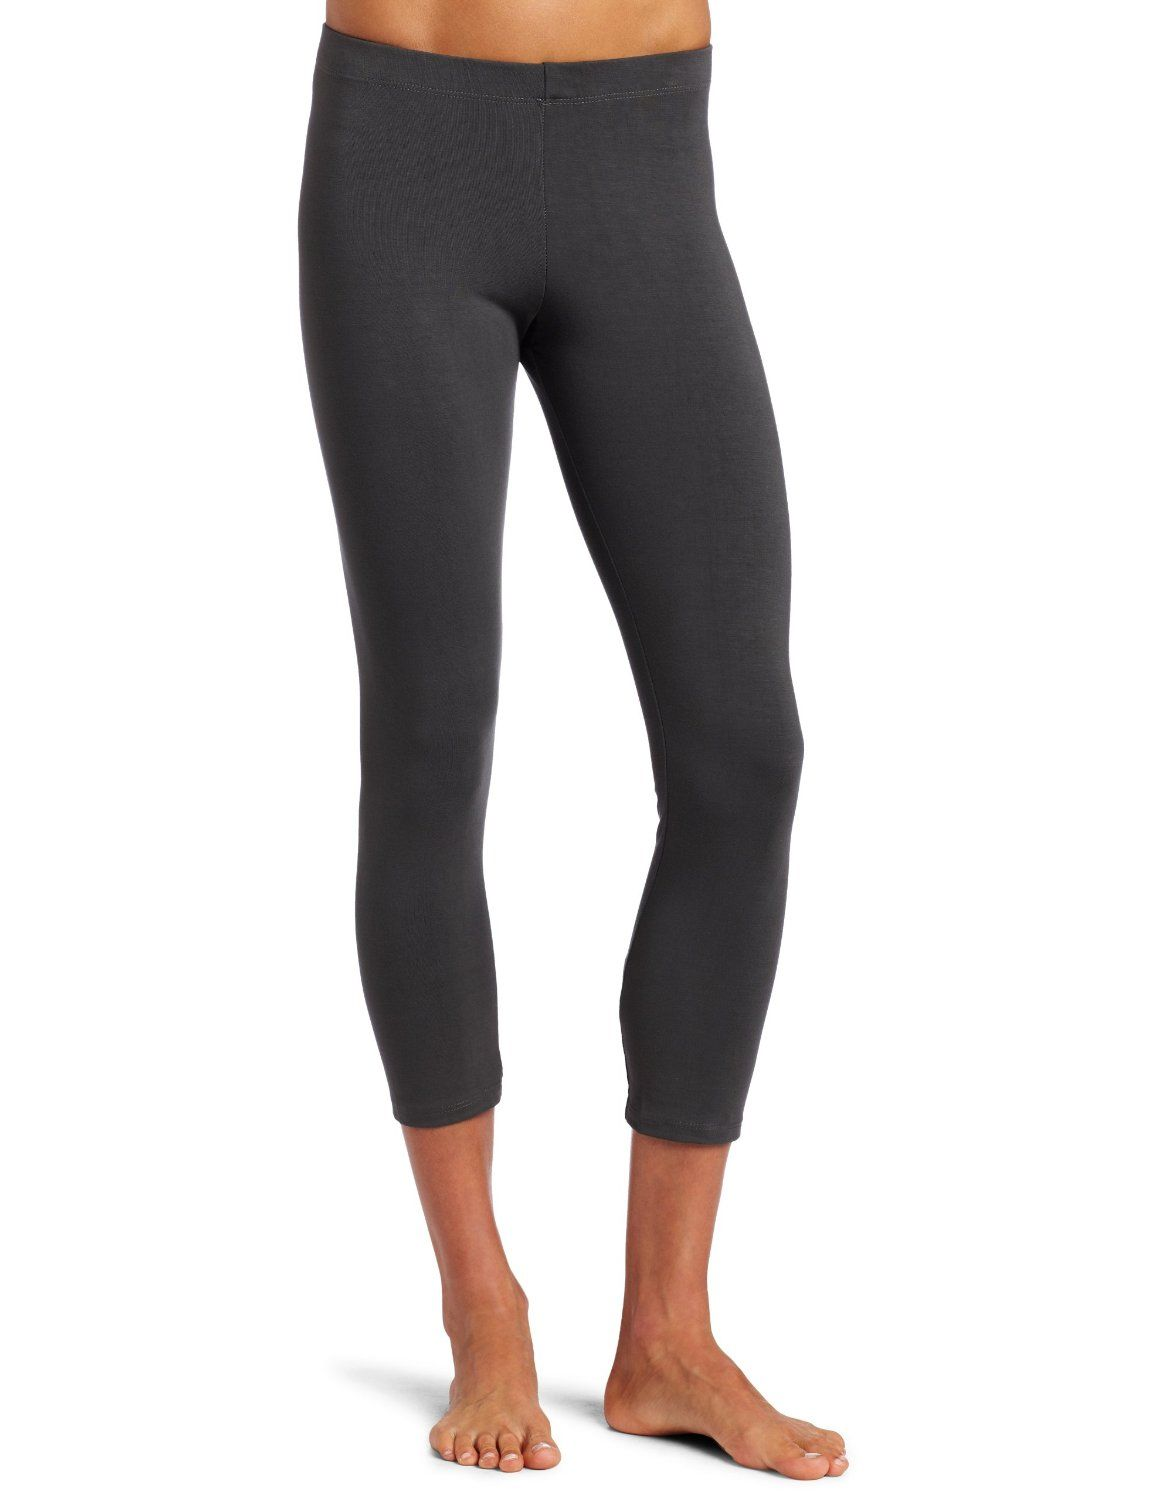 GGO Clothing Women's GGO Capri Legging